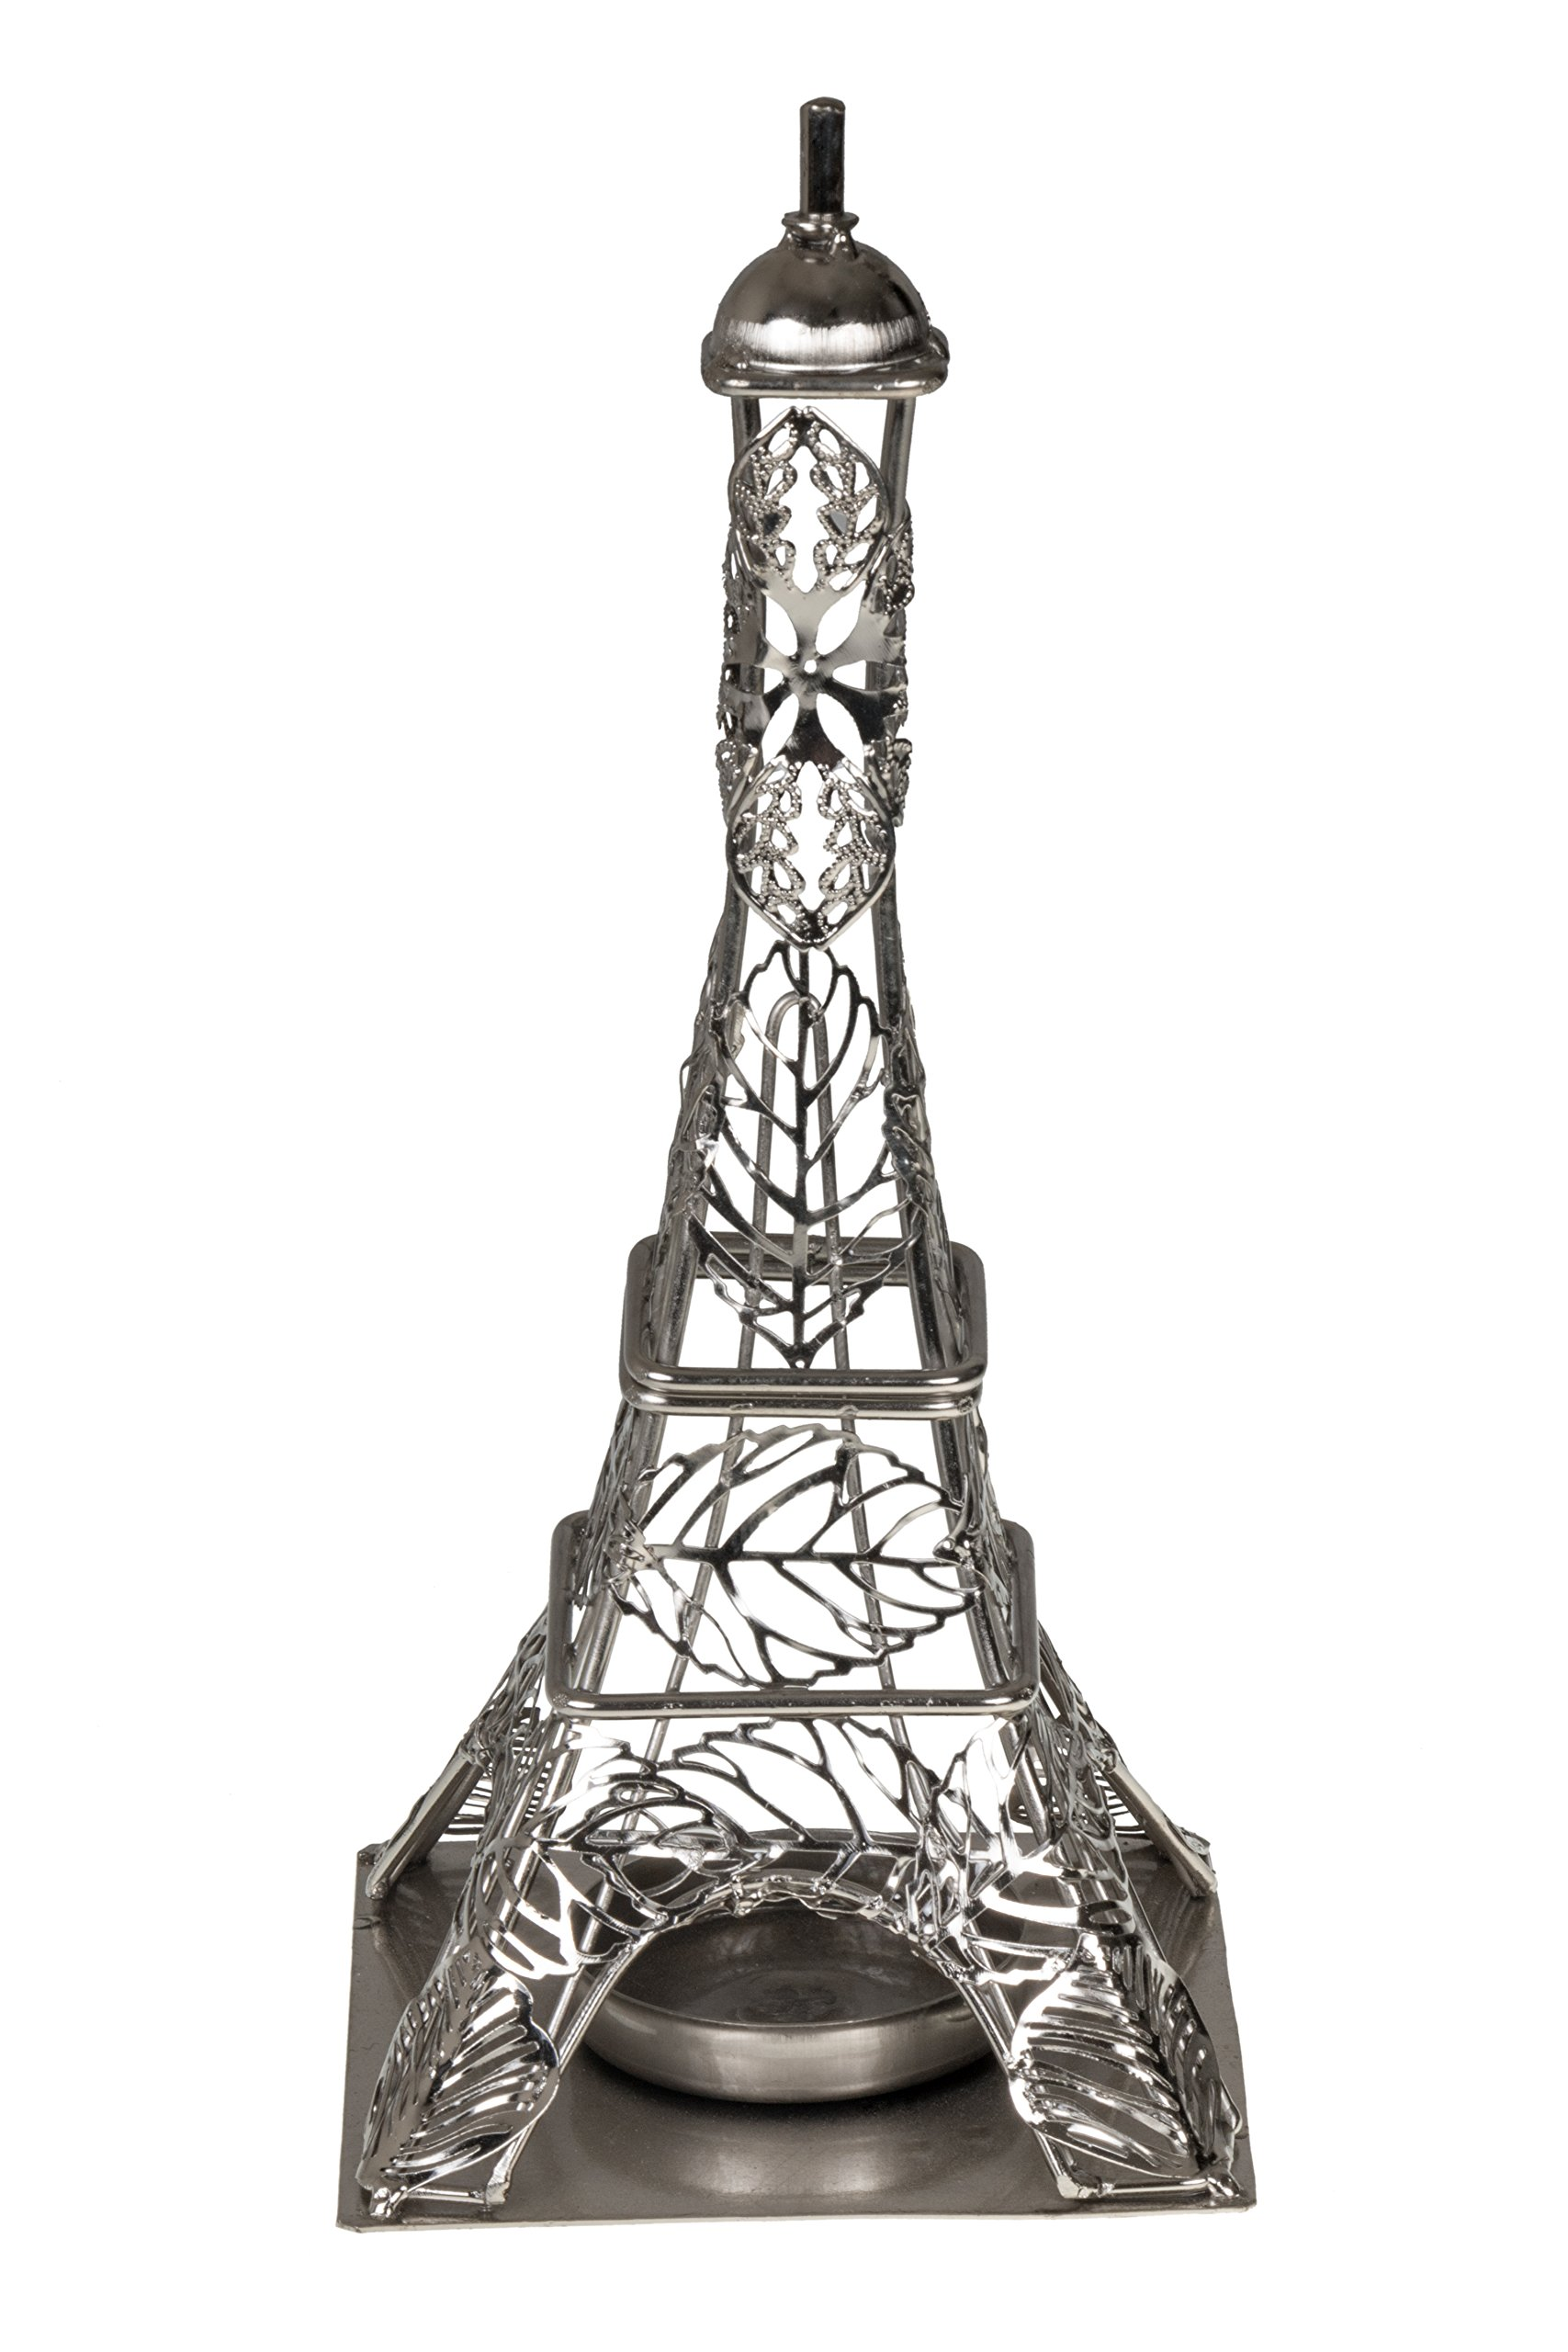 Eiffel Tower Shaped Decorative LED Candle Holder by Clever Creations | Metal Design Fits Any Decor Theme | Includes LED Light String | Stainless Steel | Measures 4'' x 4'' x 9.5'' | Battery Powered